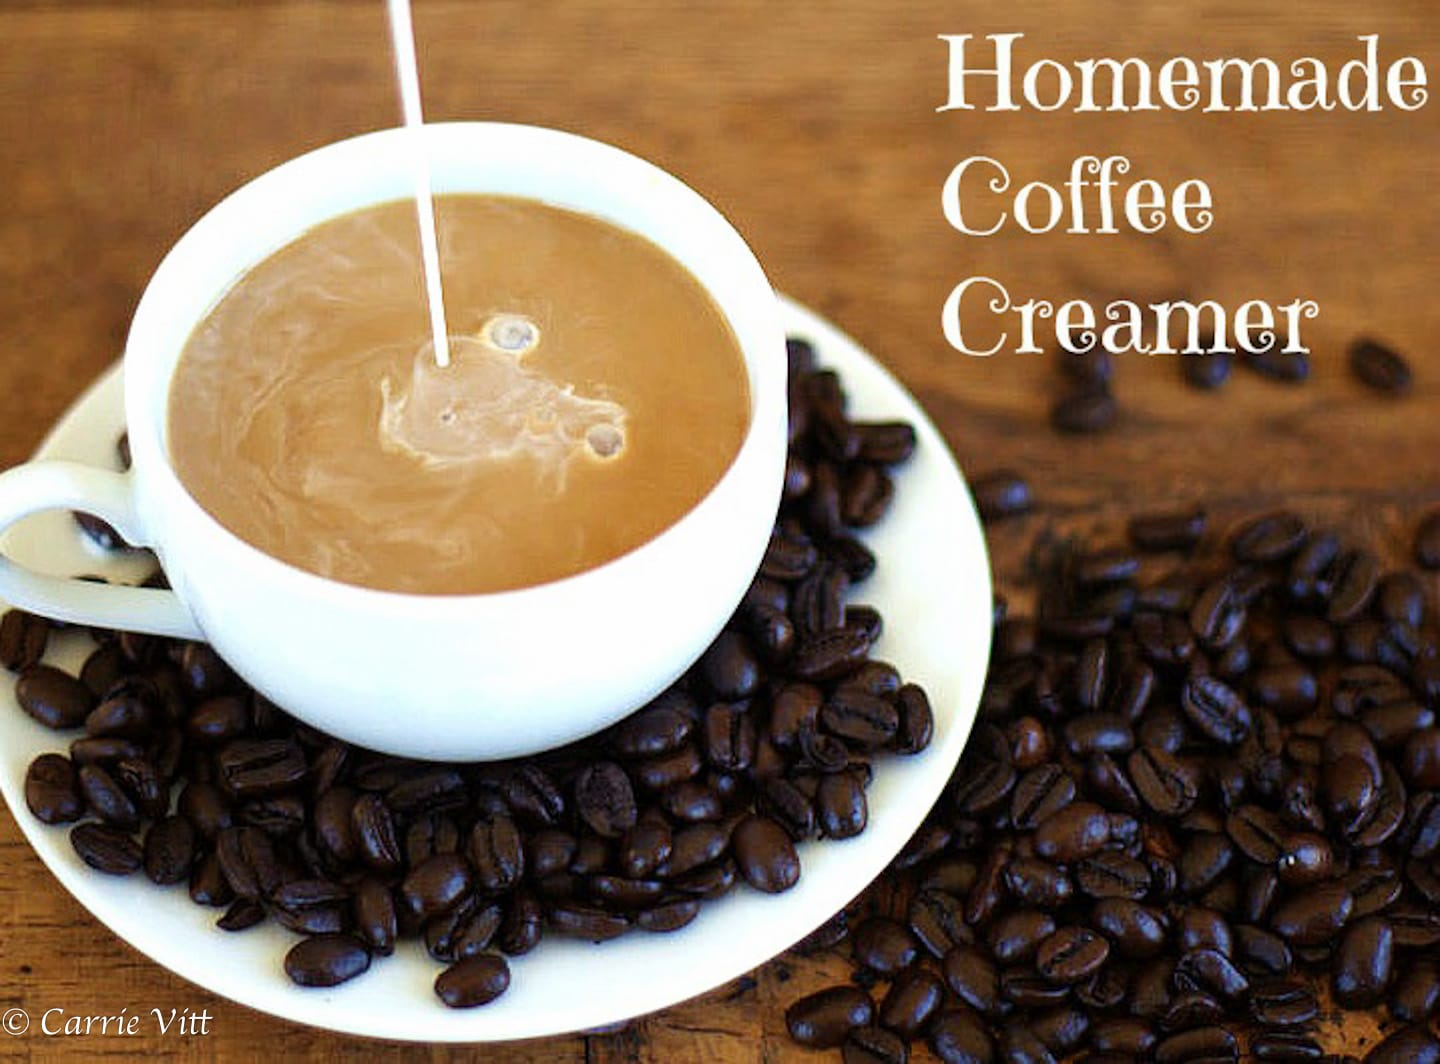 Homemade Coffee Creamer: Cinnamon Strudel